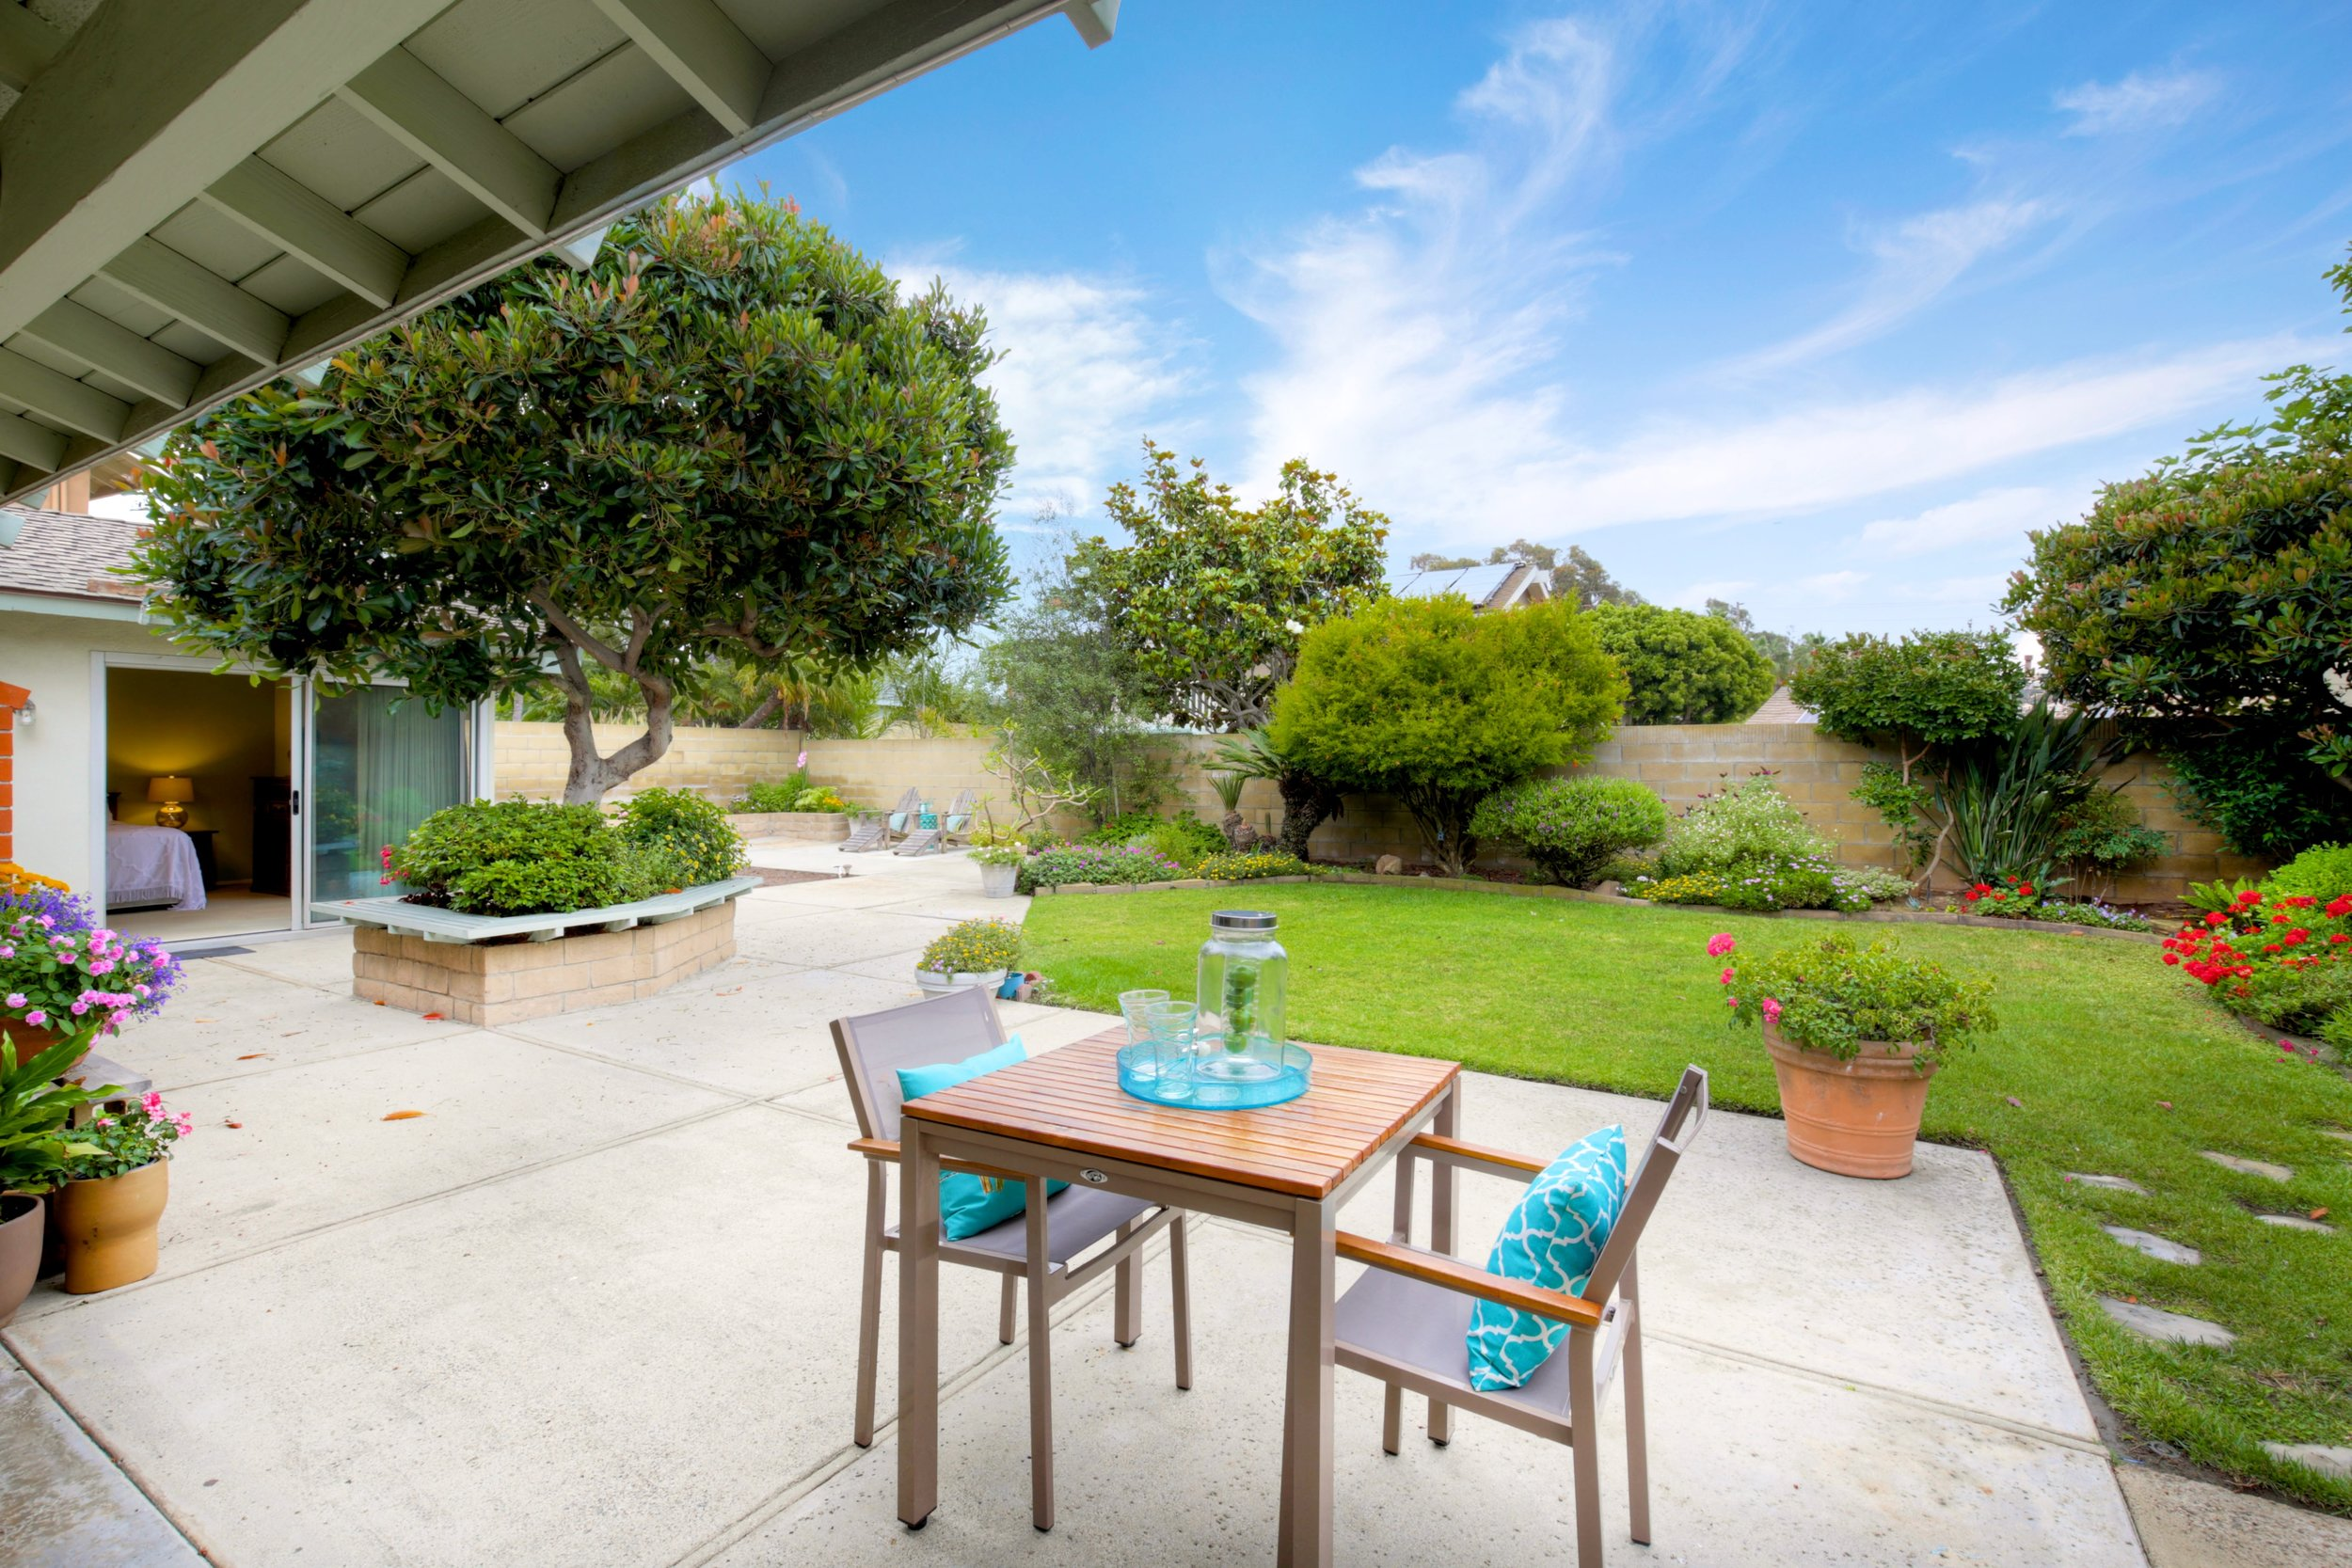 Upper SeaCliff - SOLD by MARIA X for $1,185,00019472 Surfdale Ln. Huntington Beach4 Bedrooms/2 Baths 1860 Sq ft.